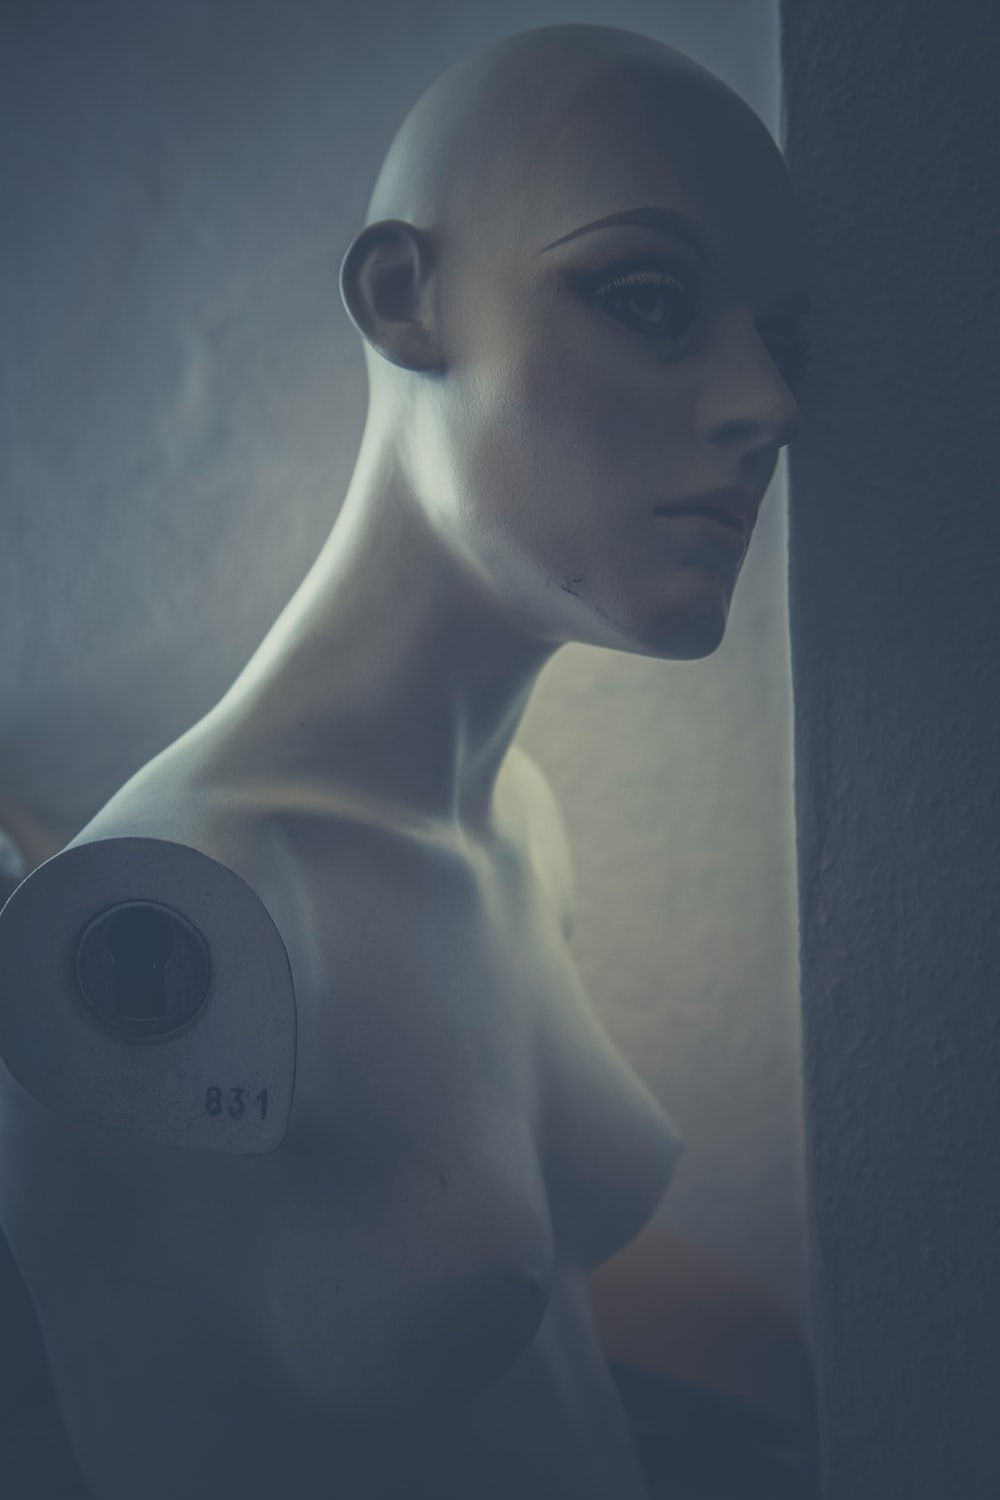 An armless mannequin with its head leaning against a wall.